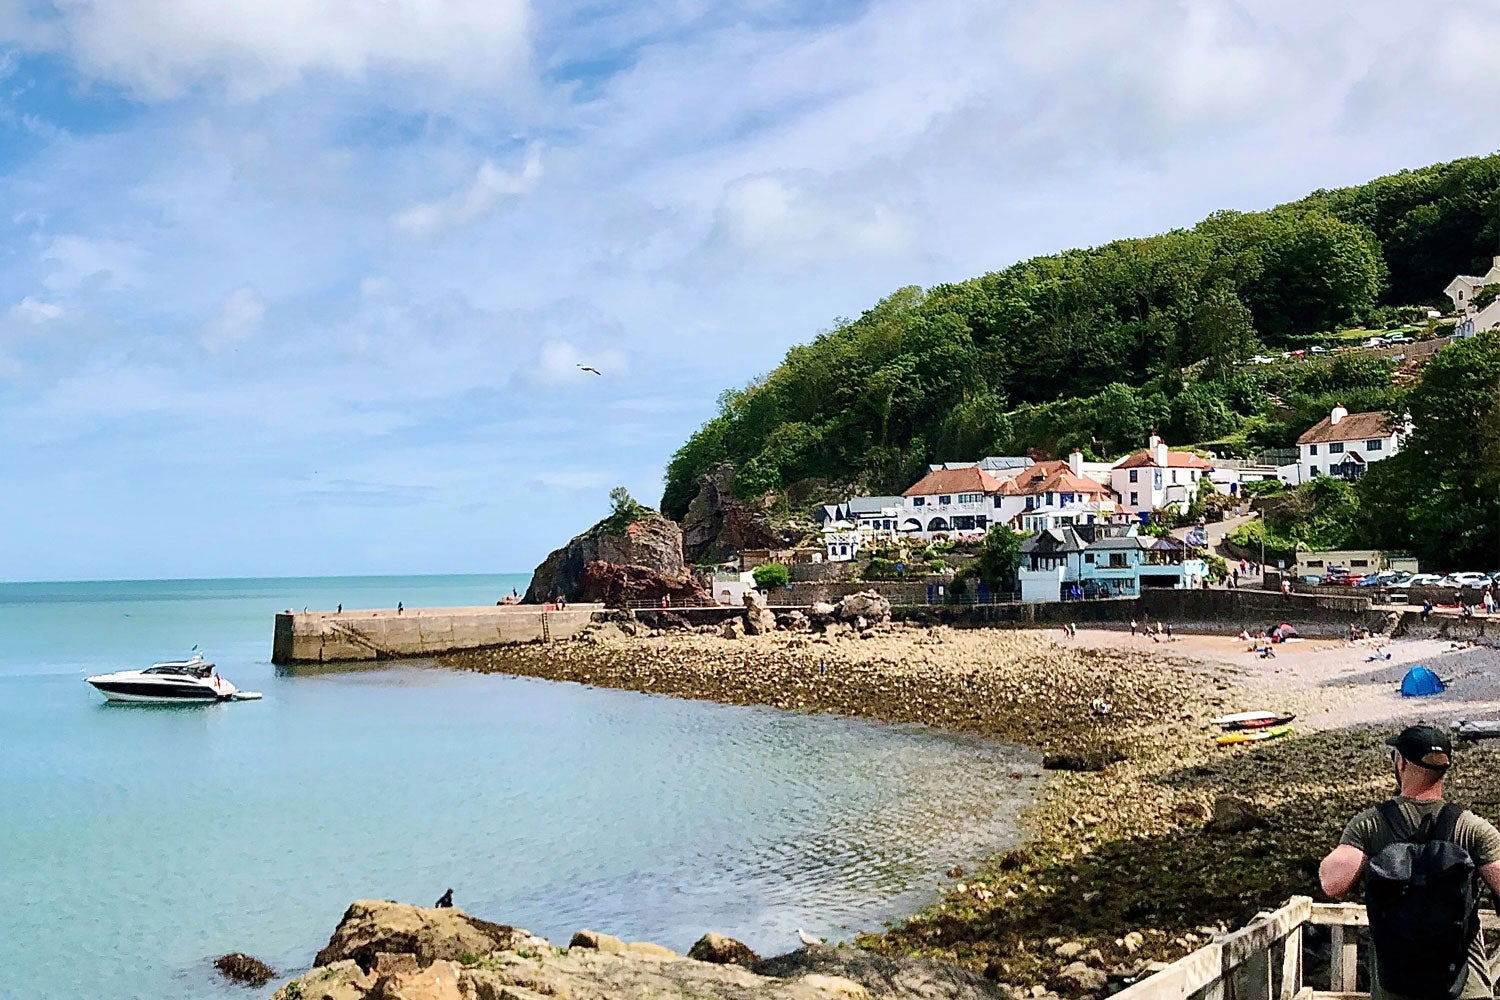 Staycation Series: Devon & Cornwall – a mini tour of the South West Coast! | Joe Browns Official Blog